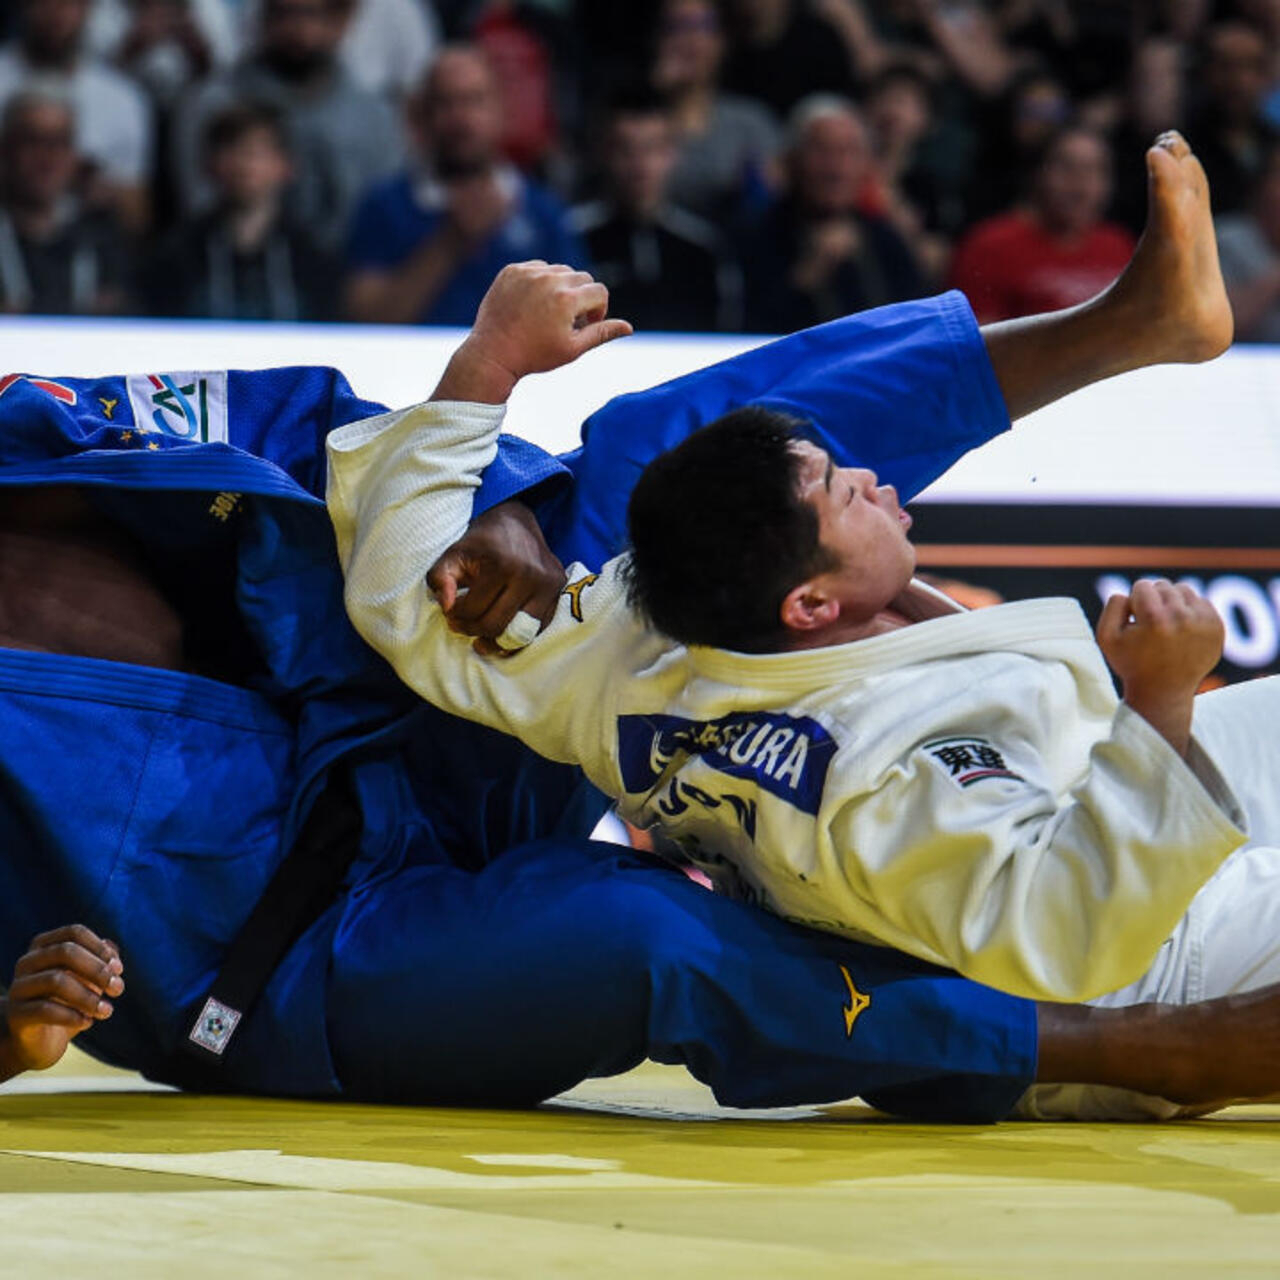 Judo Champion Riner Stumbles After Nine Years Undefeated